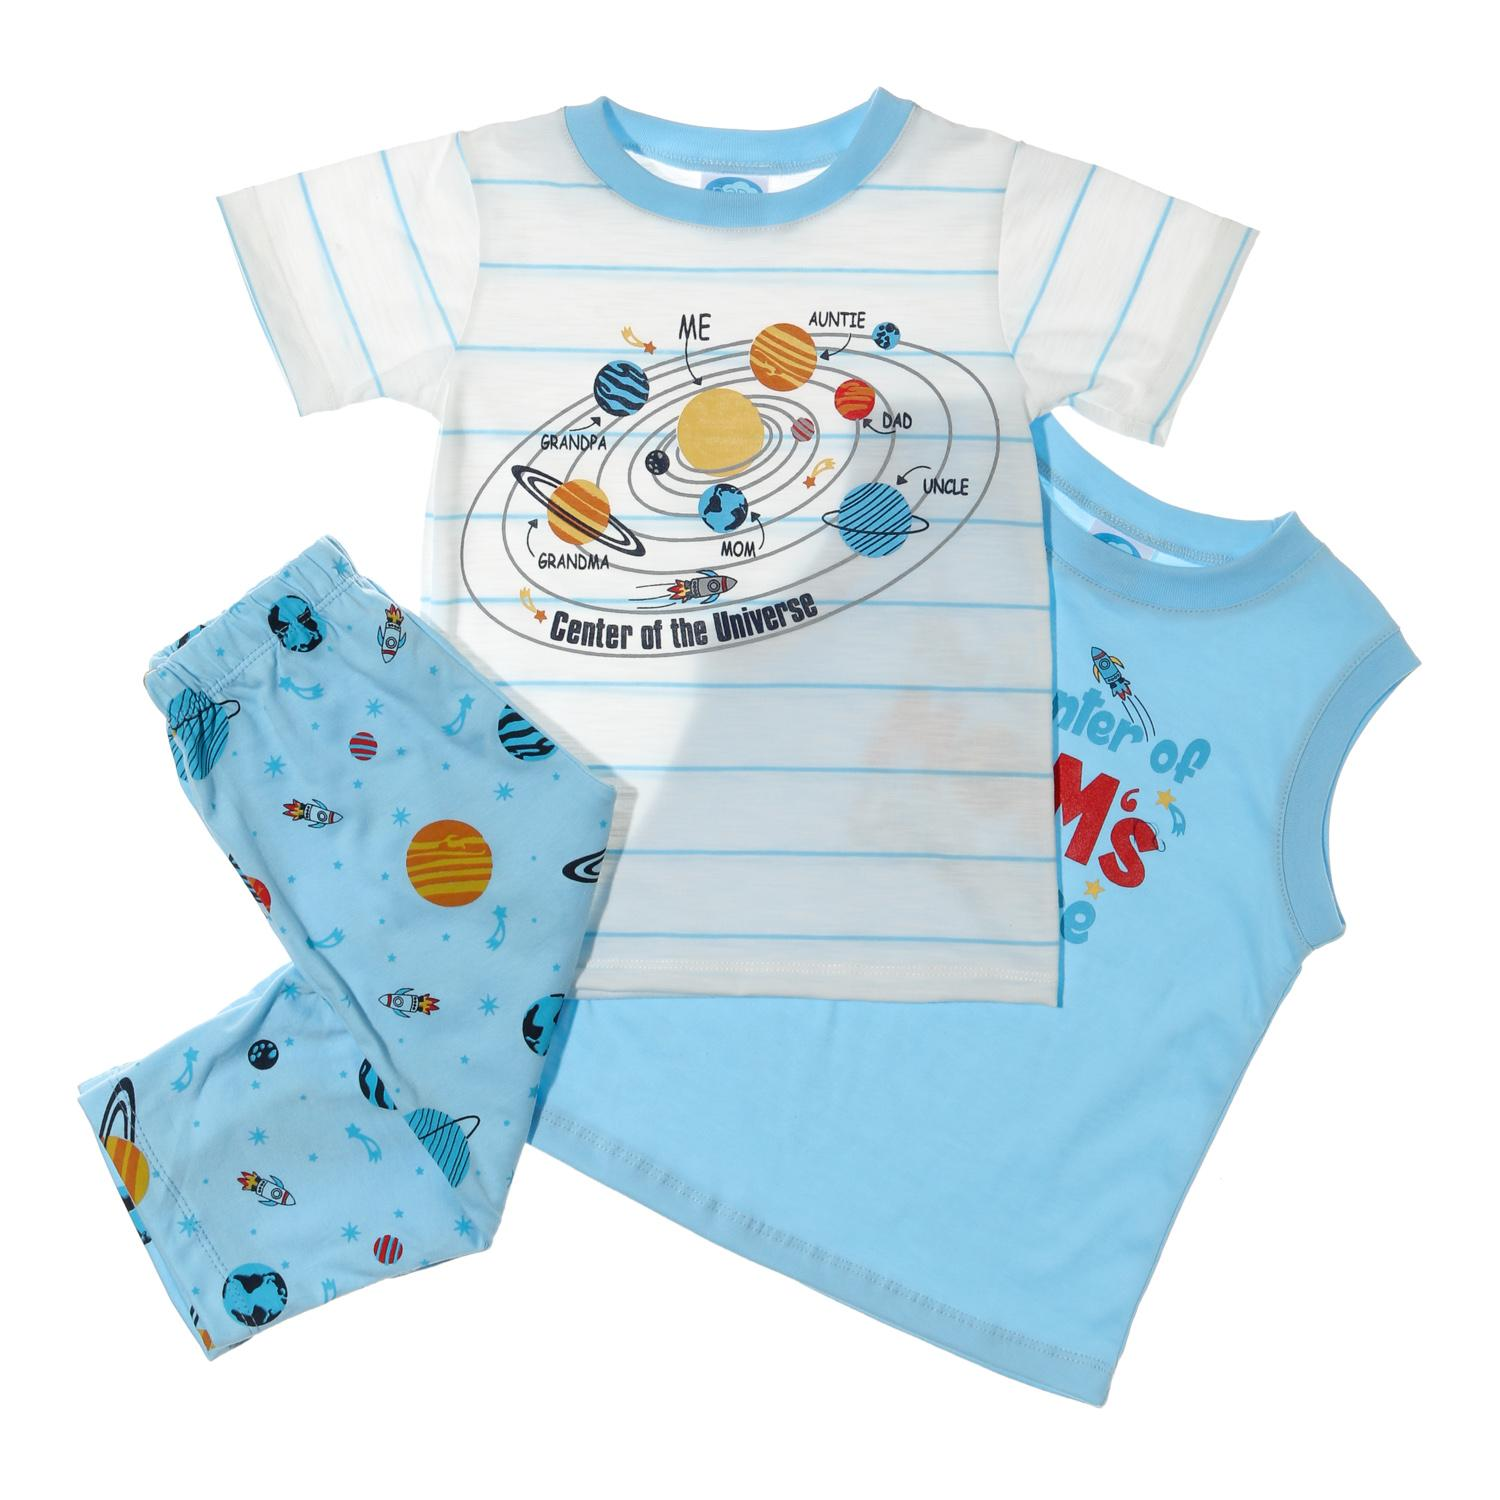 c19828c47 Baby Clothes for sale - Baby Clothing Online Deals & Prices in ...